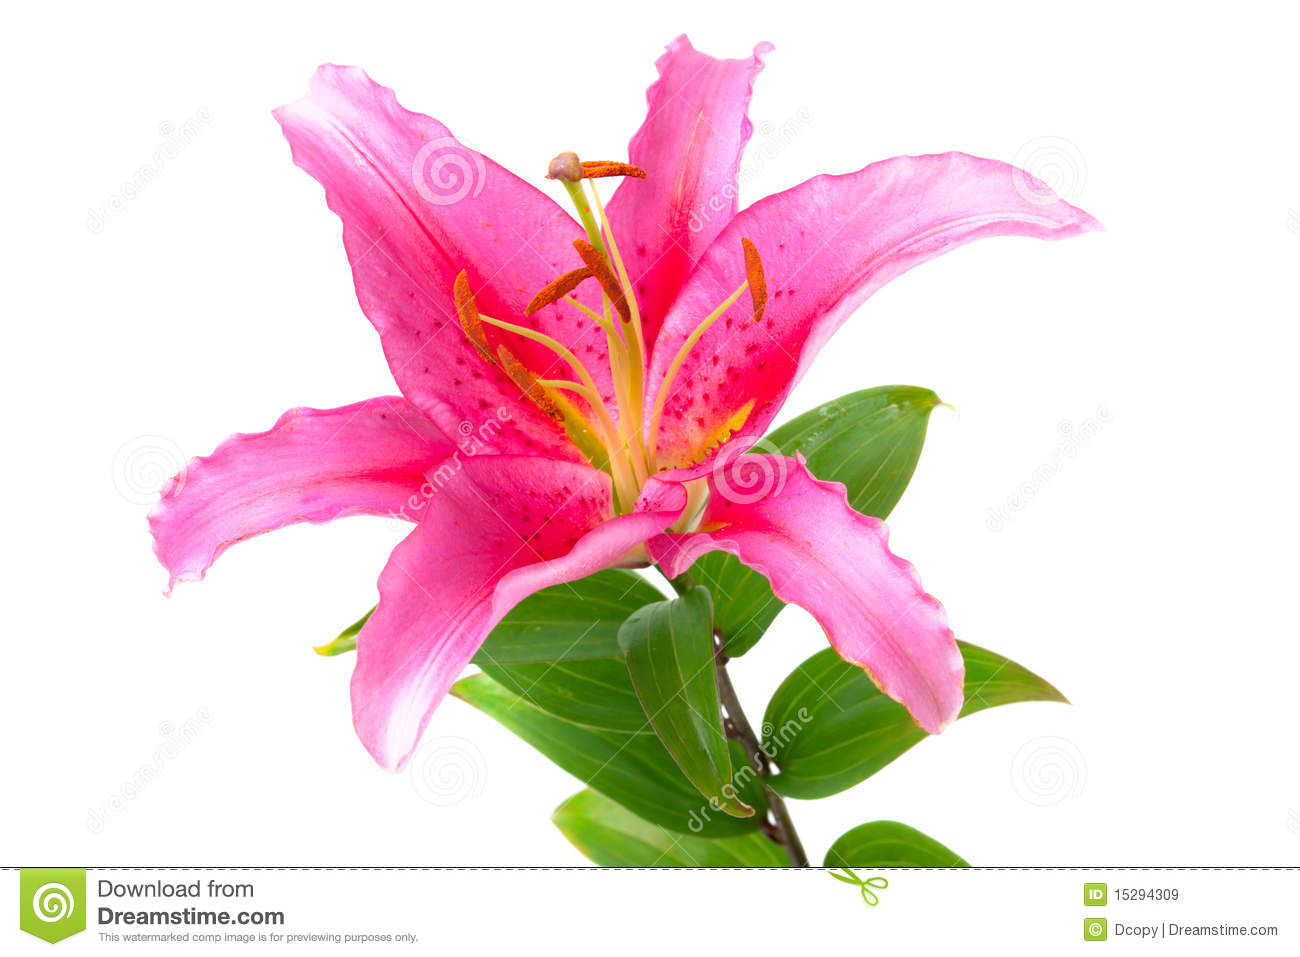 pink lily flower royalty free stock images  image, Natural flower